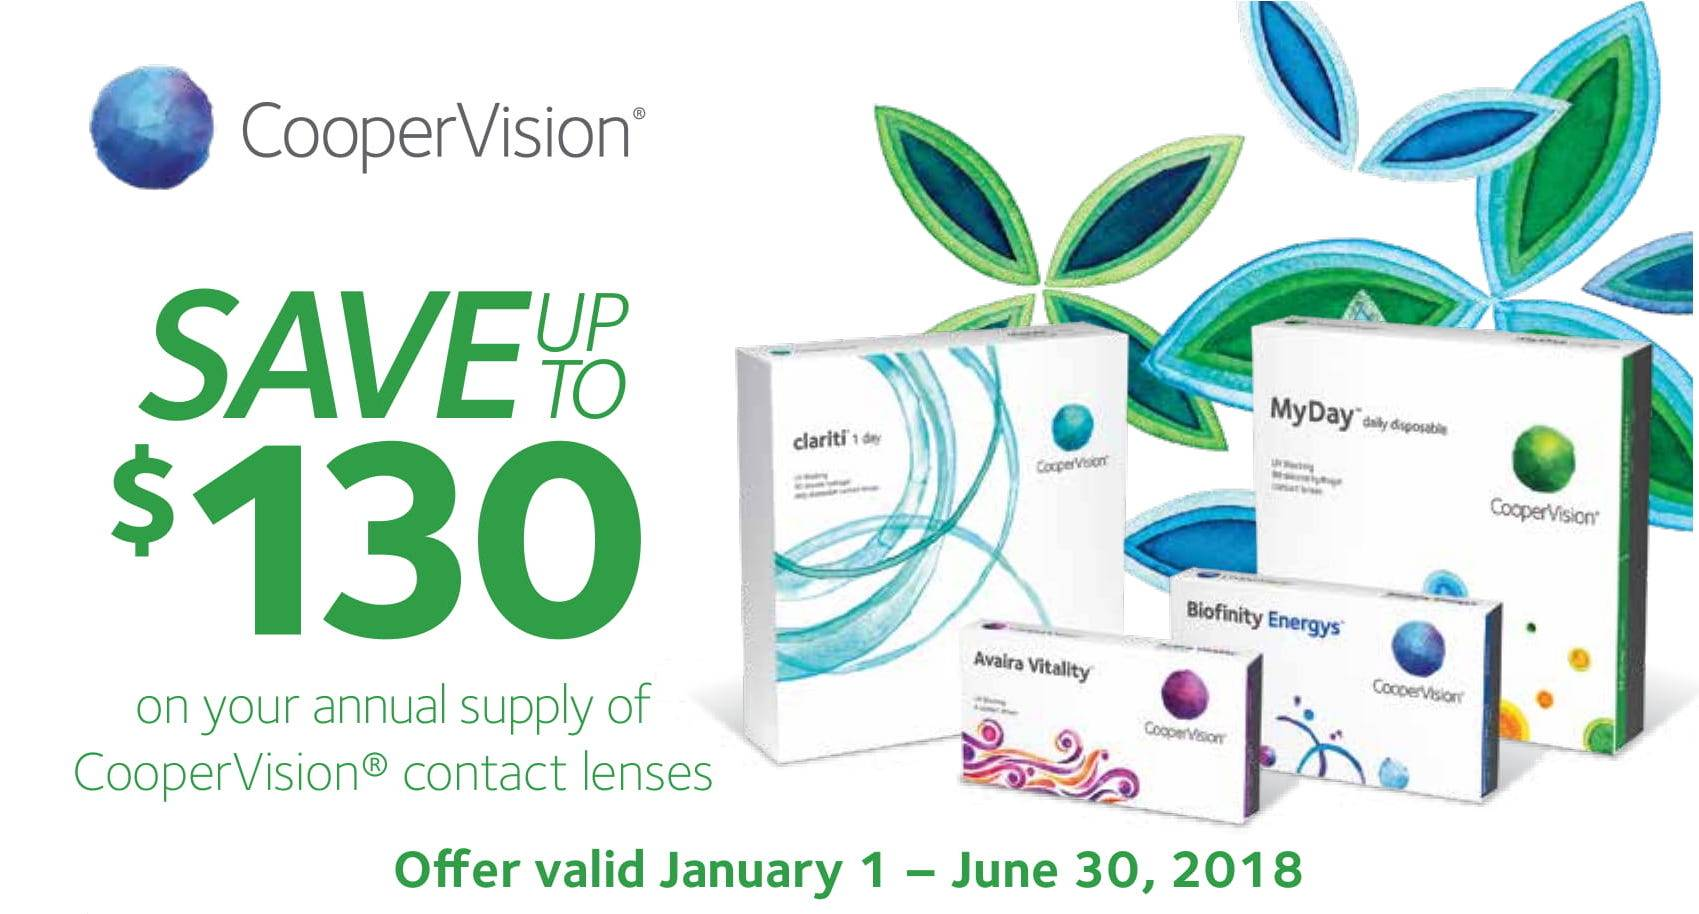 Cooper Vision rebate in San Jose $130 off